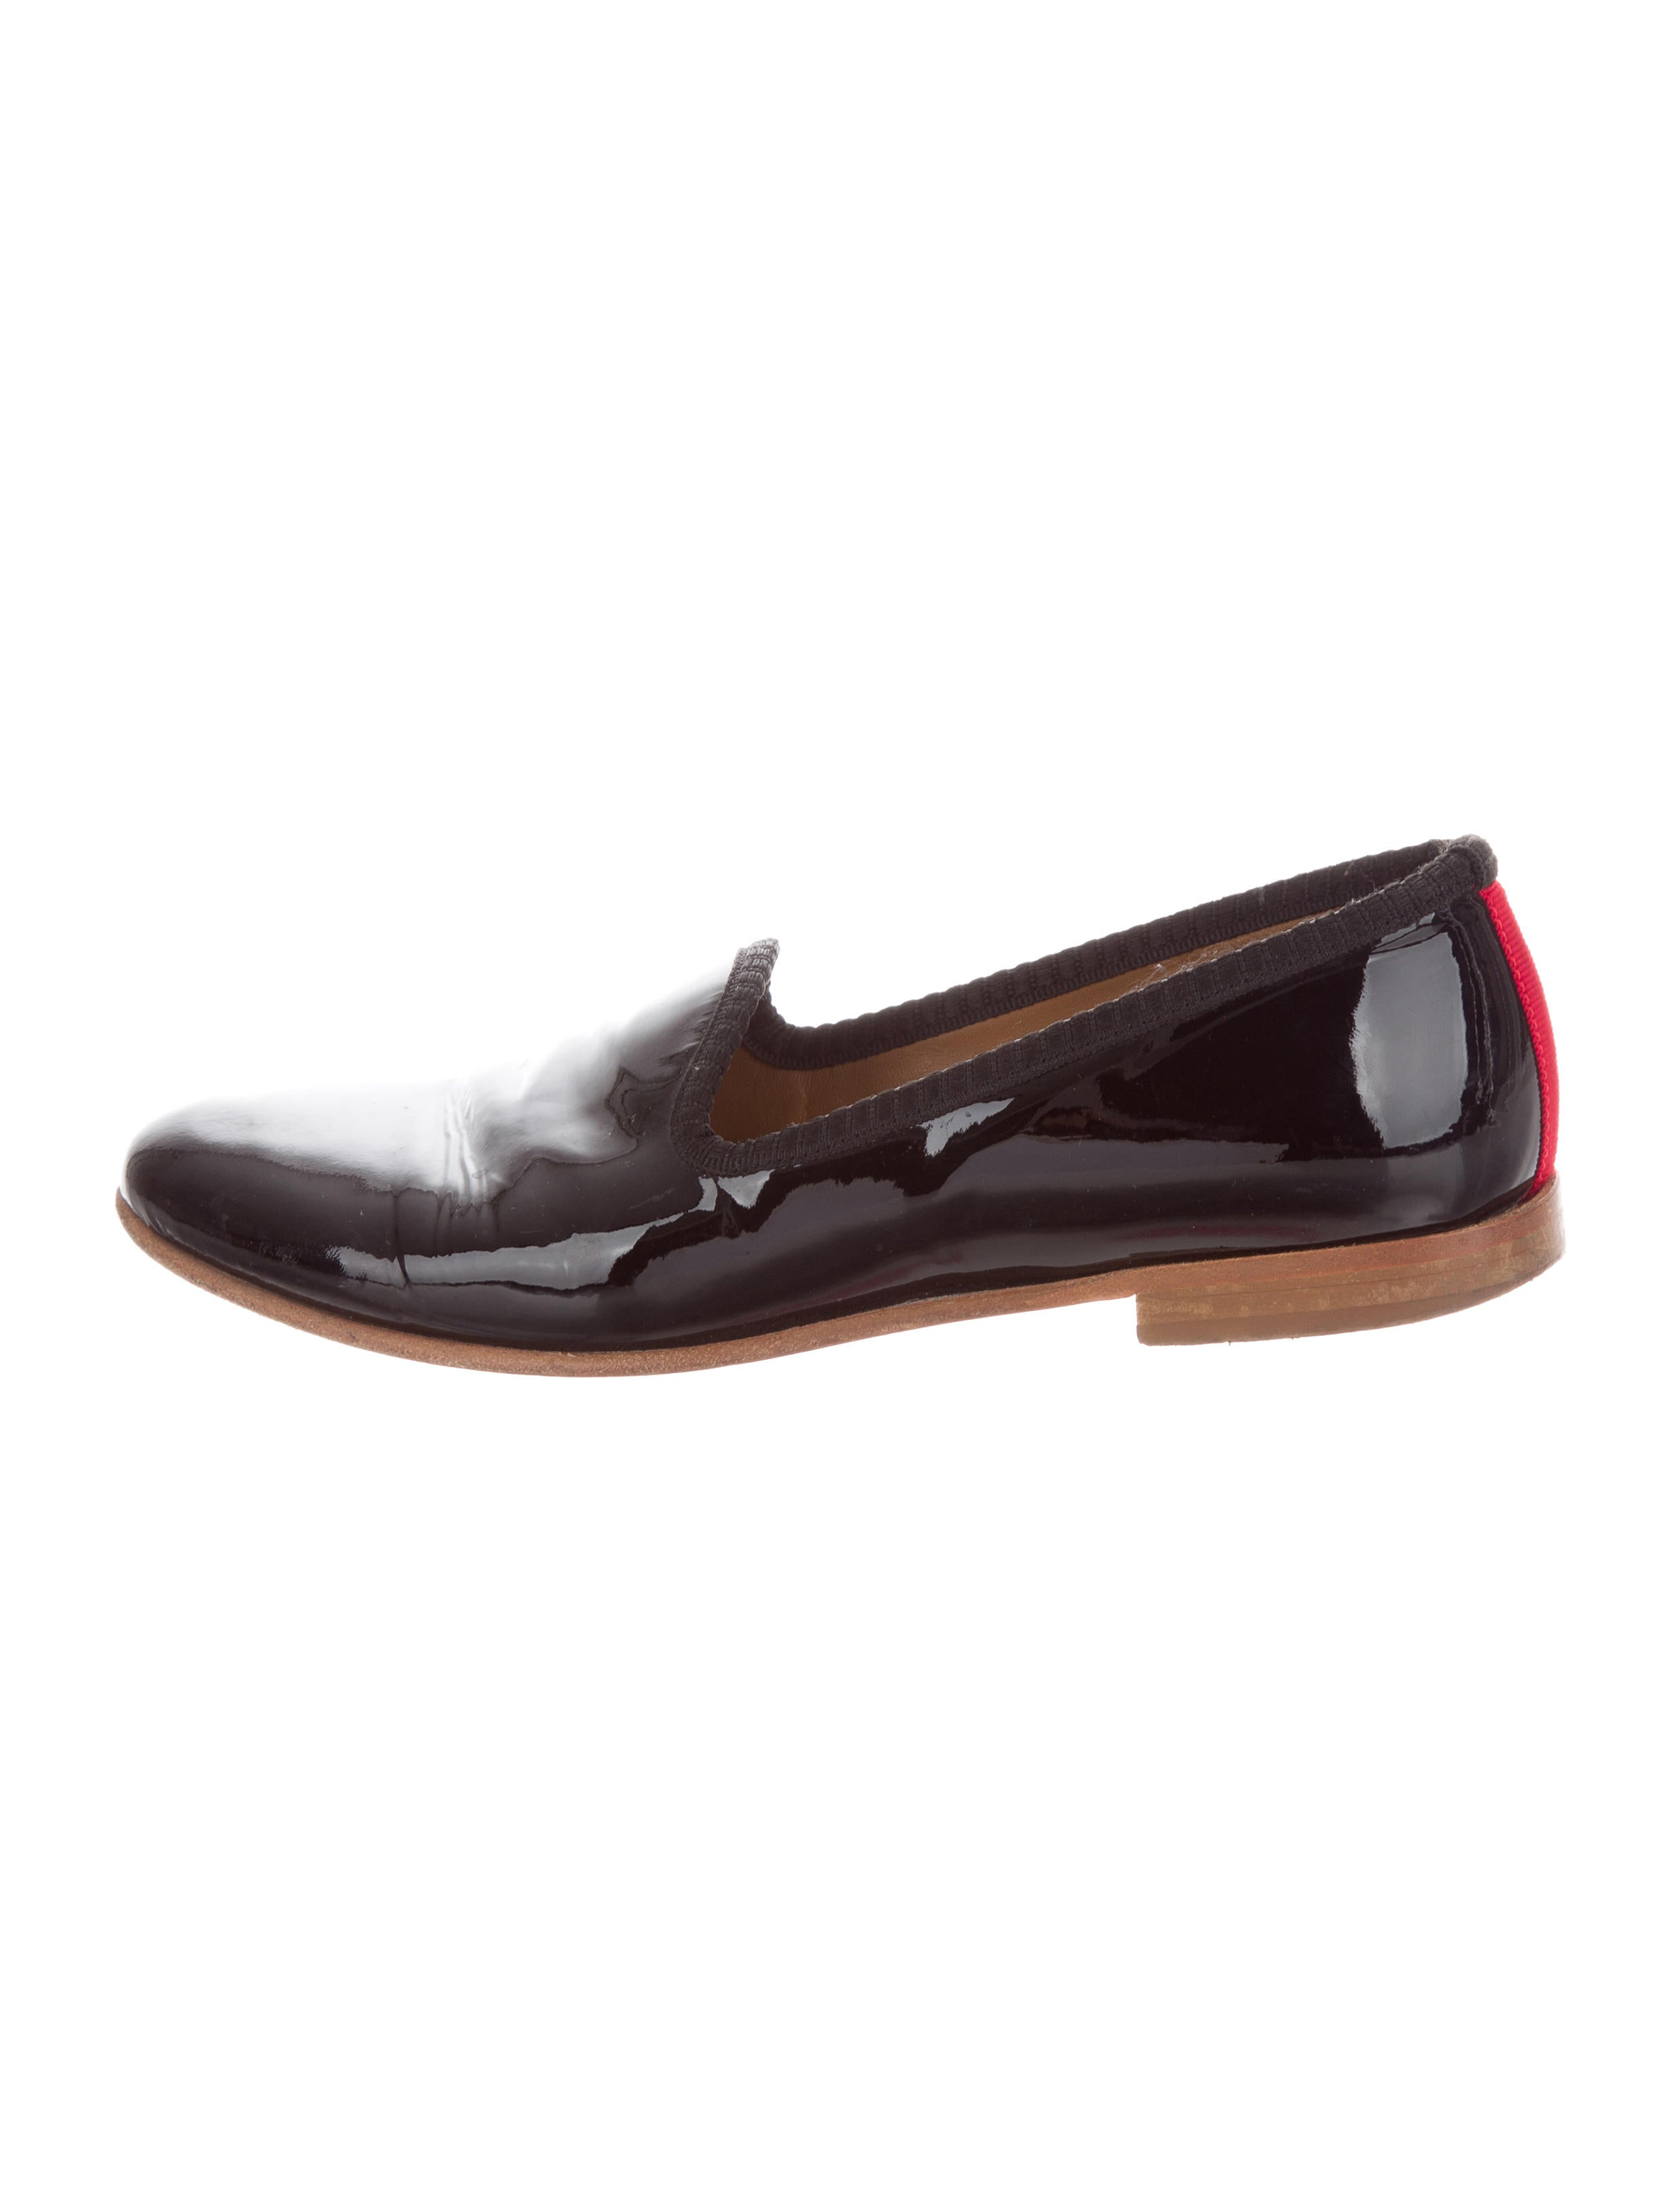 outlet cheap quality Del Toro Patent Leather Round-Toe Loafers clearance great deals outlet discount sale top quality 7oTa26gdI4